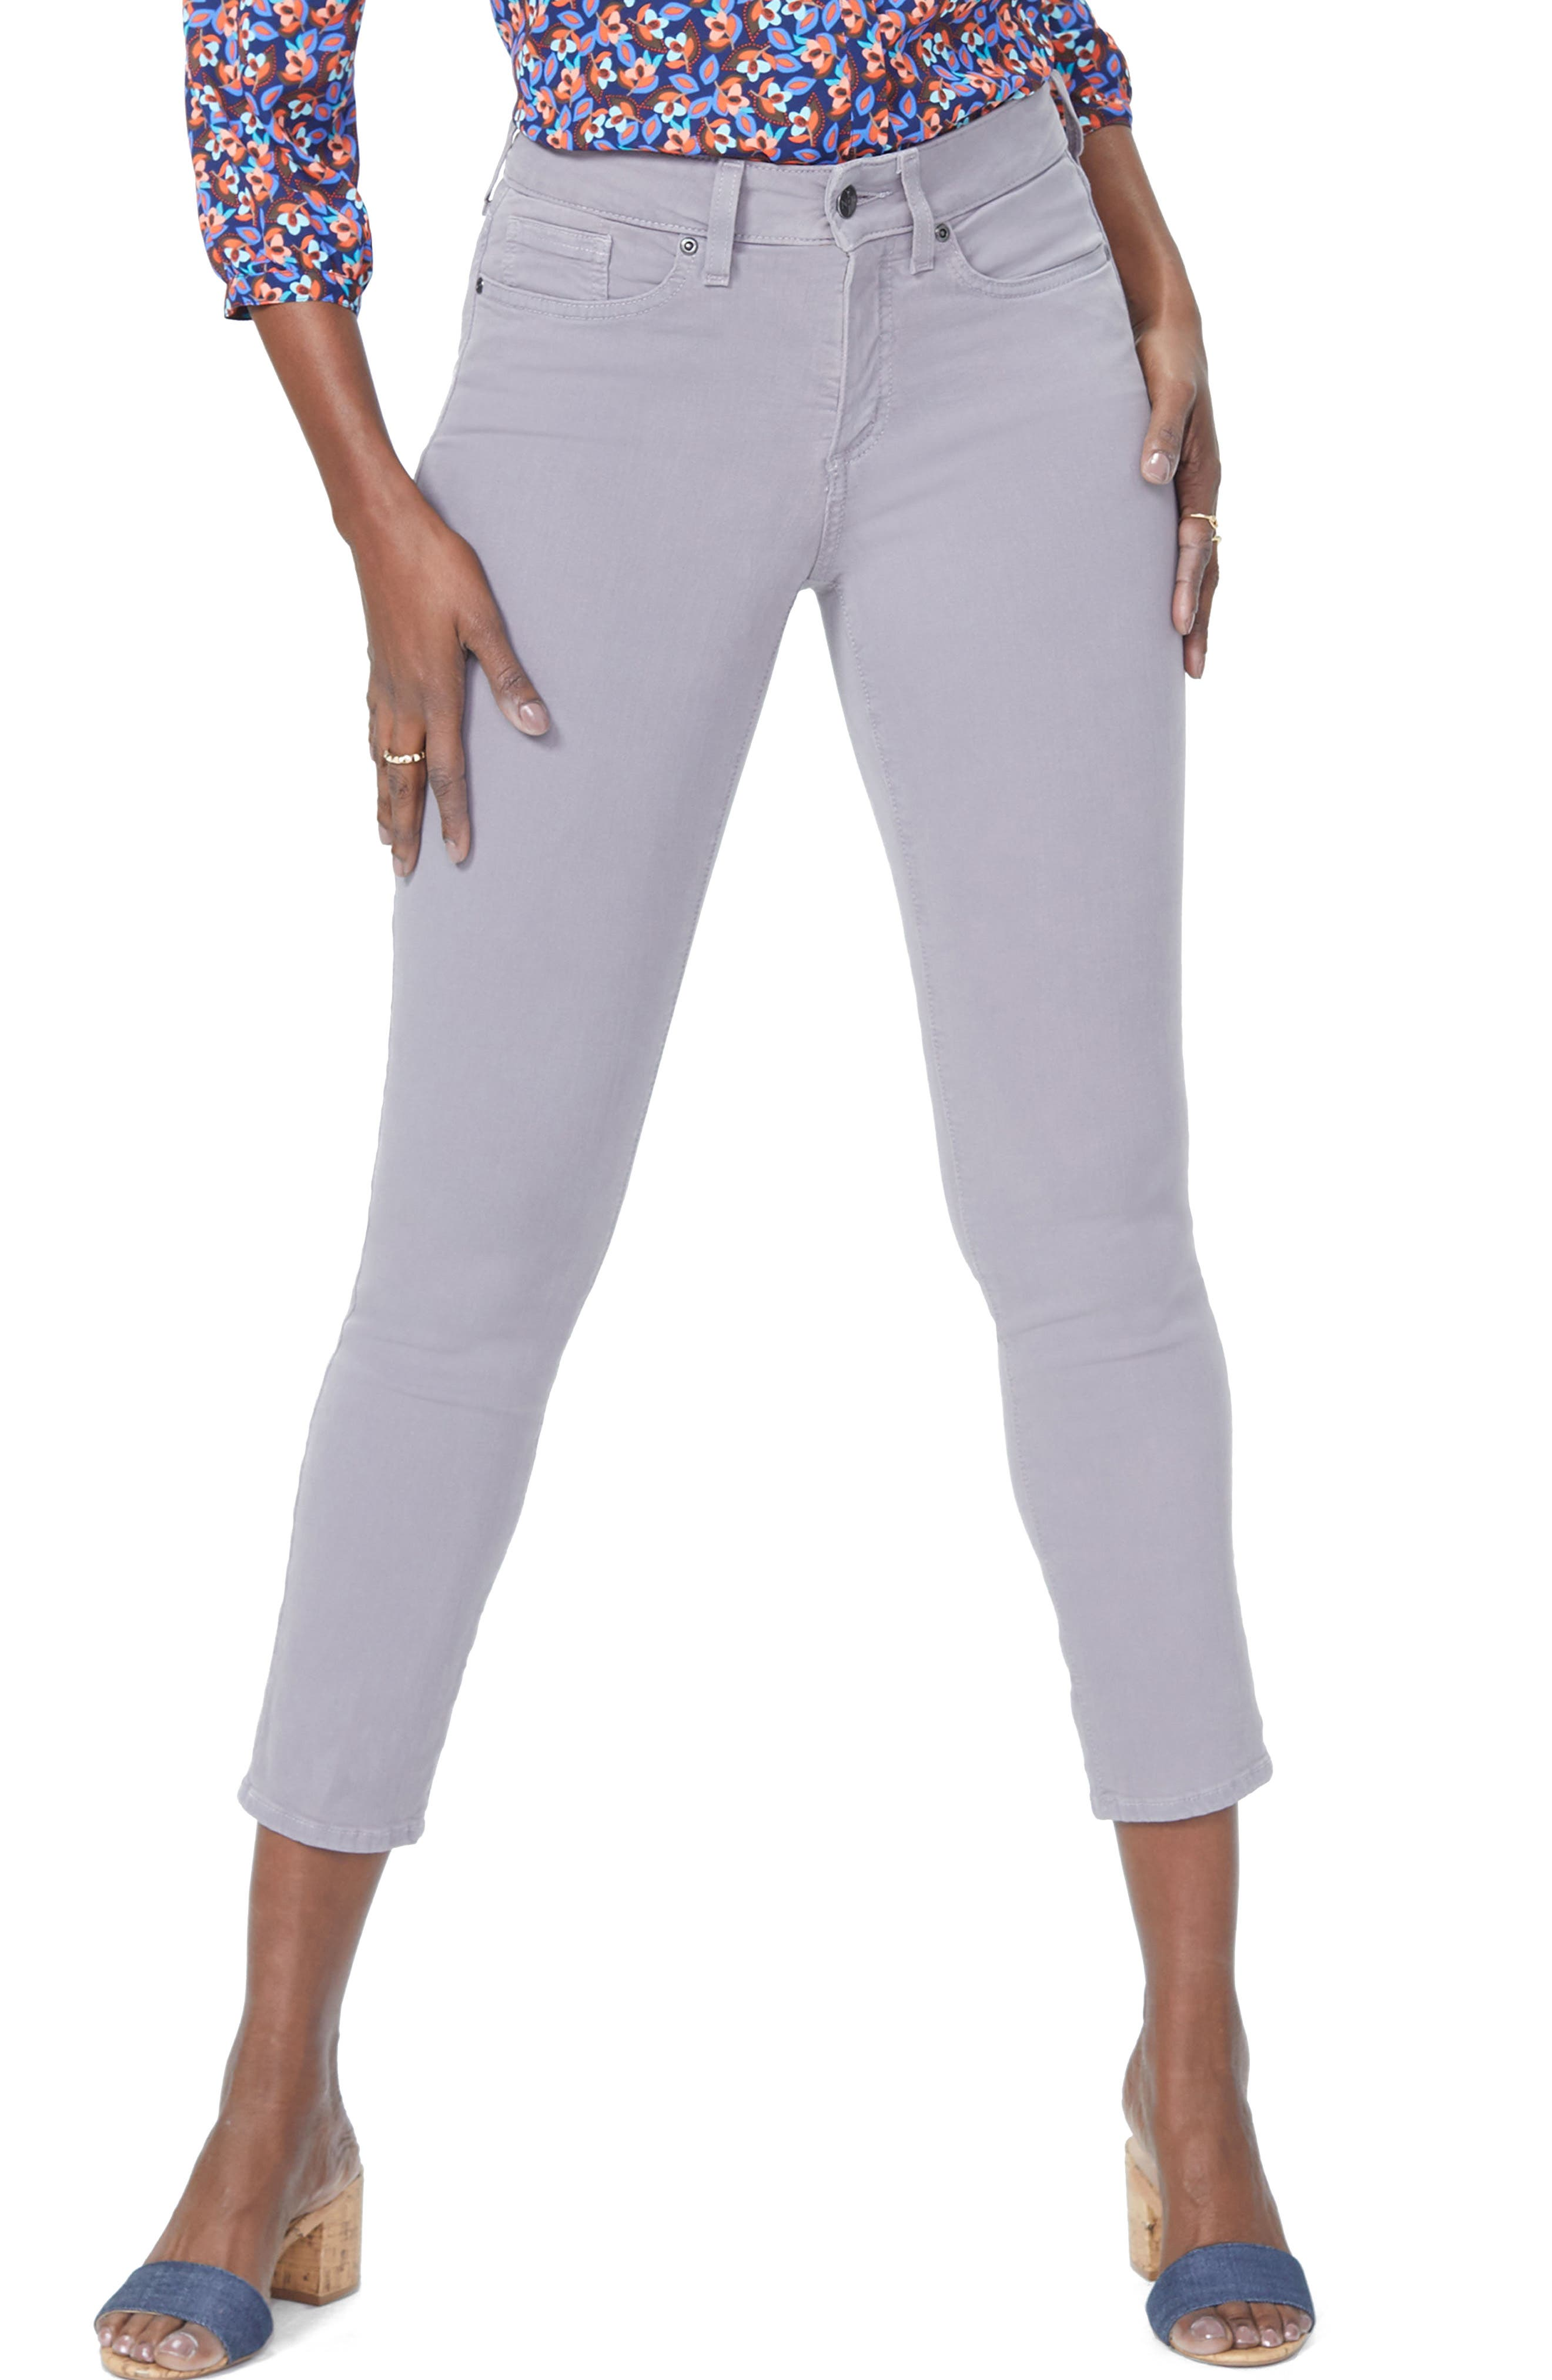 Alina High Waist Ankle Jeans,                             Main thumbnail 1, color,                             022